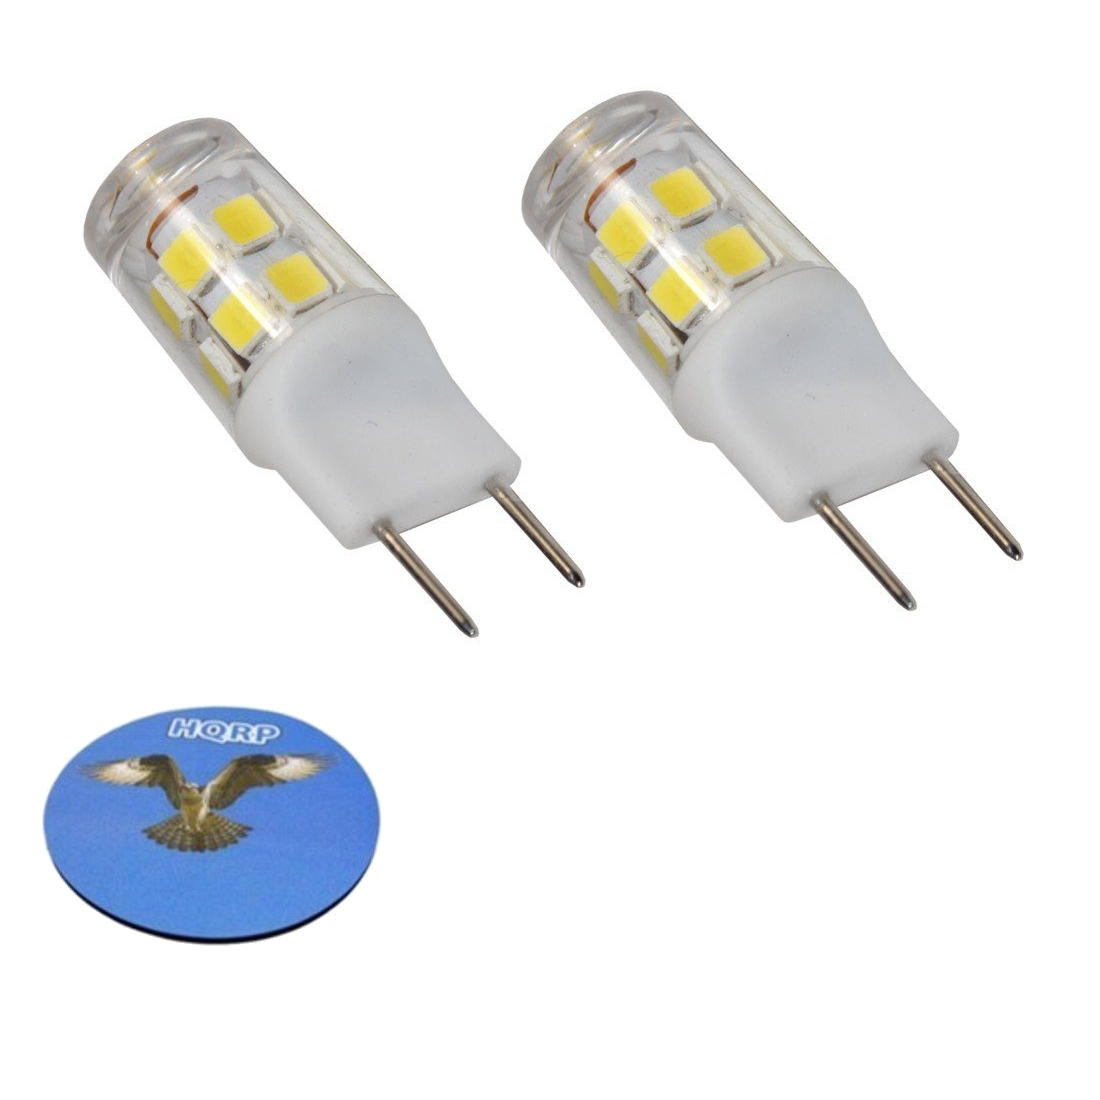 HQRP 2-Pack G8 Bi-Pin 17 LEDs Light Bulb SMD 2835 Cool White for Bathroom Vanity, Chandeliers, Track, Under Counter Kitchen, Kitchen, Landscape Lighting plus HQRP Coaster